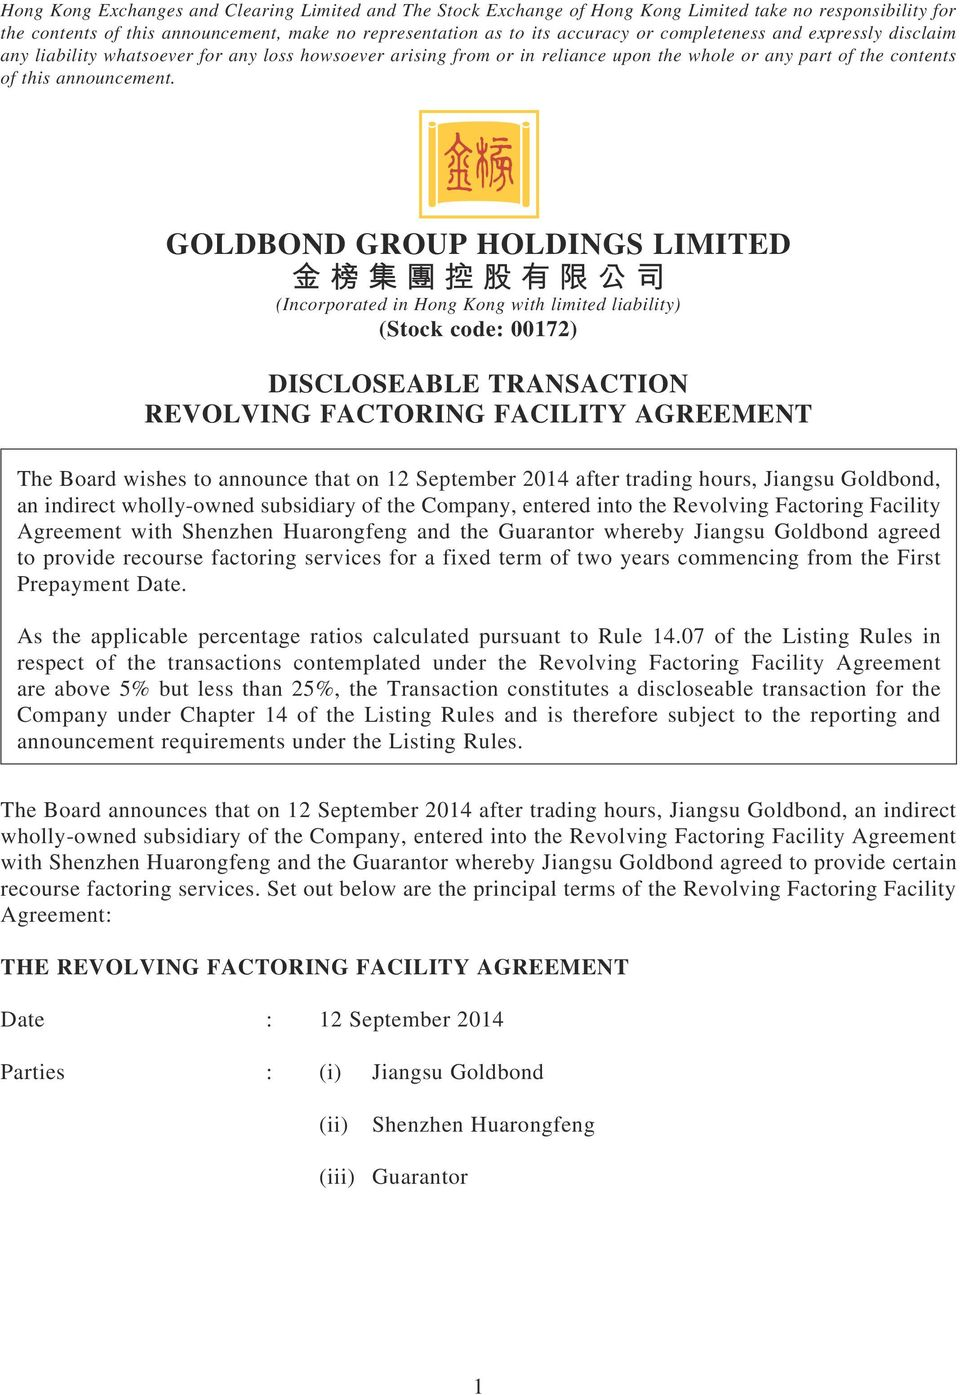 GOLDBOND GROUP HOLDINGS LIMITED (Incorporated in Hong Kong with limited liability) (Stock code: 00172) DISCLOSEABLE TRANSACTION REVOLVING FACTORING FACILITY AGREEMENT The Board wishes to announce